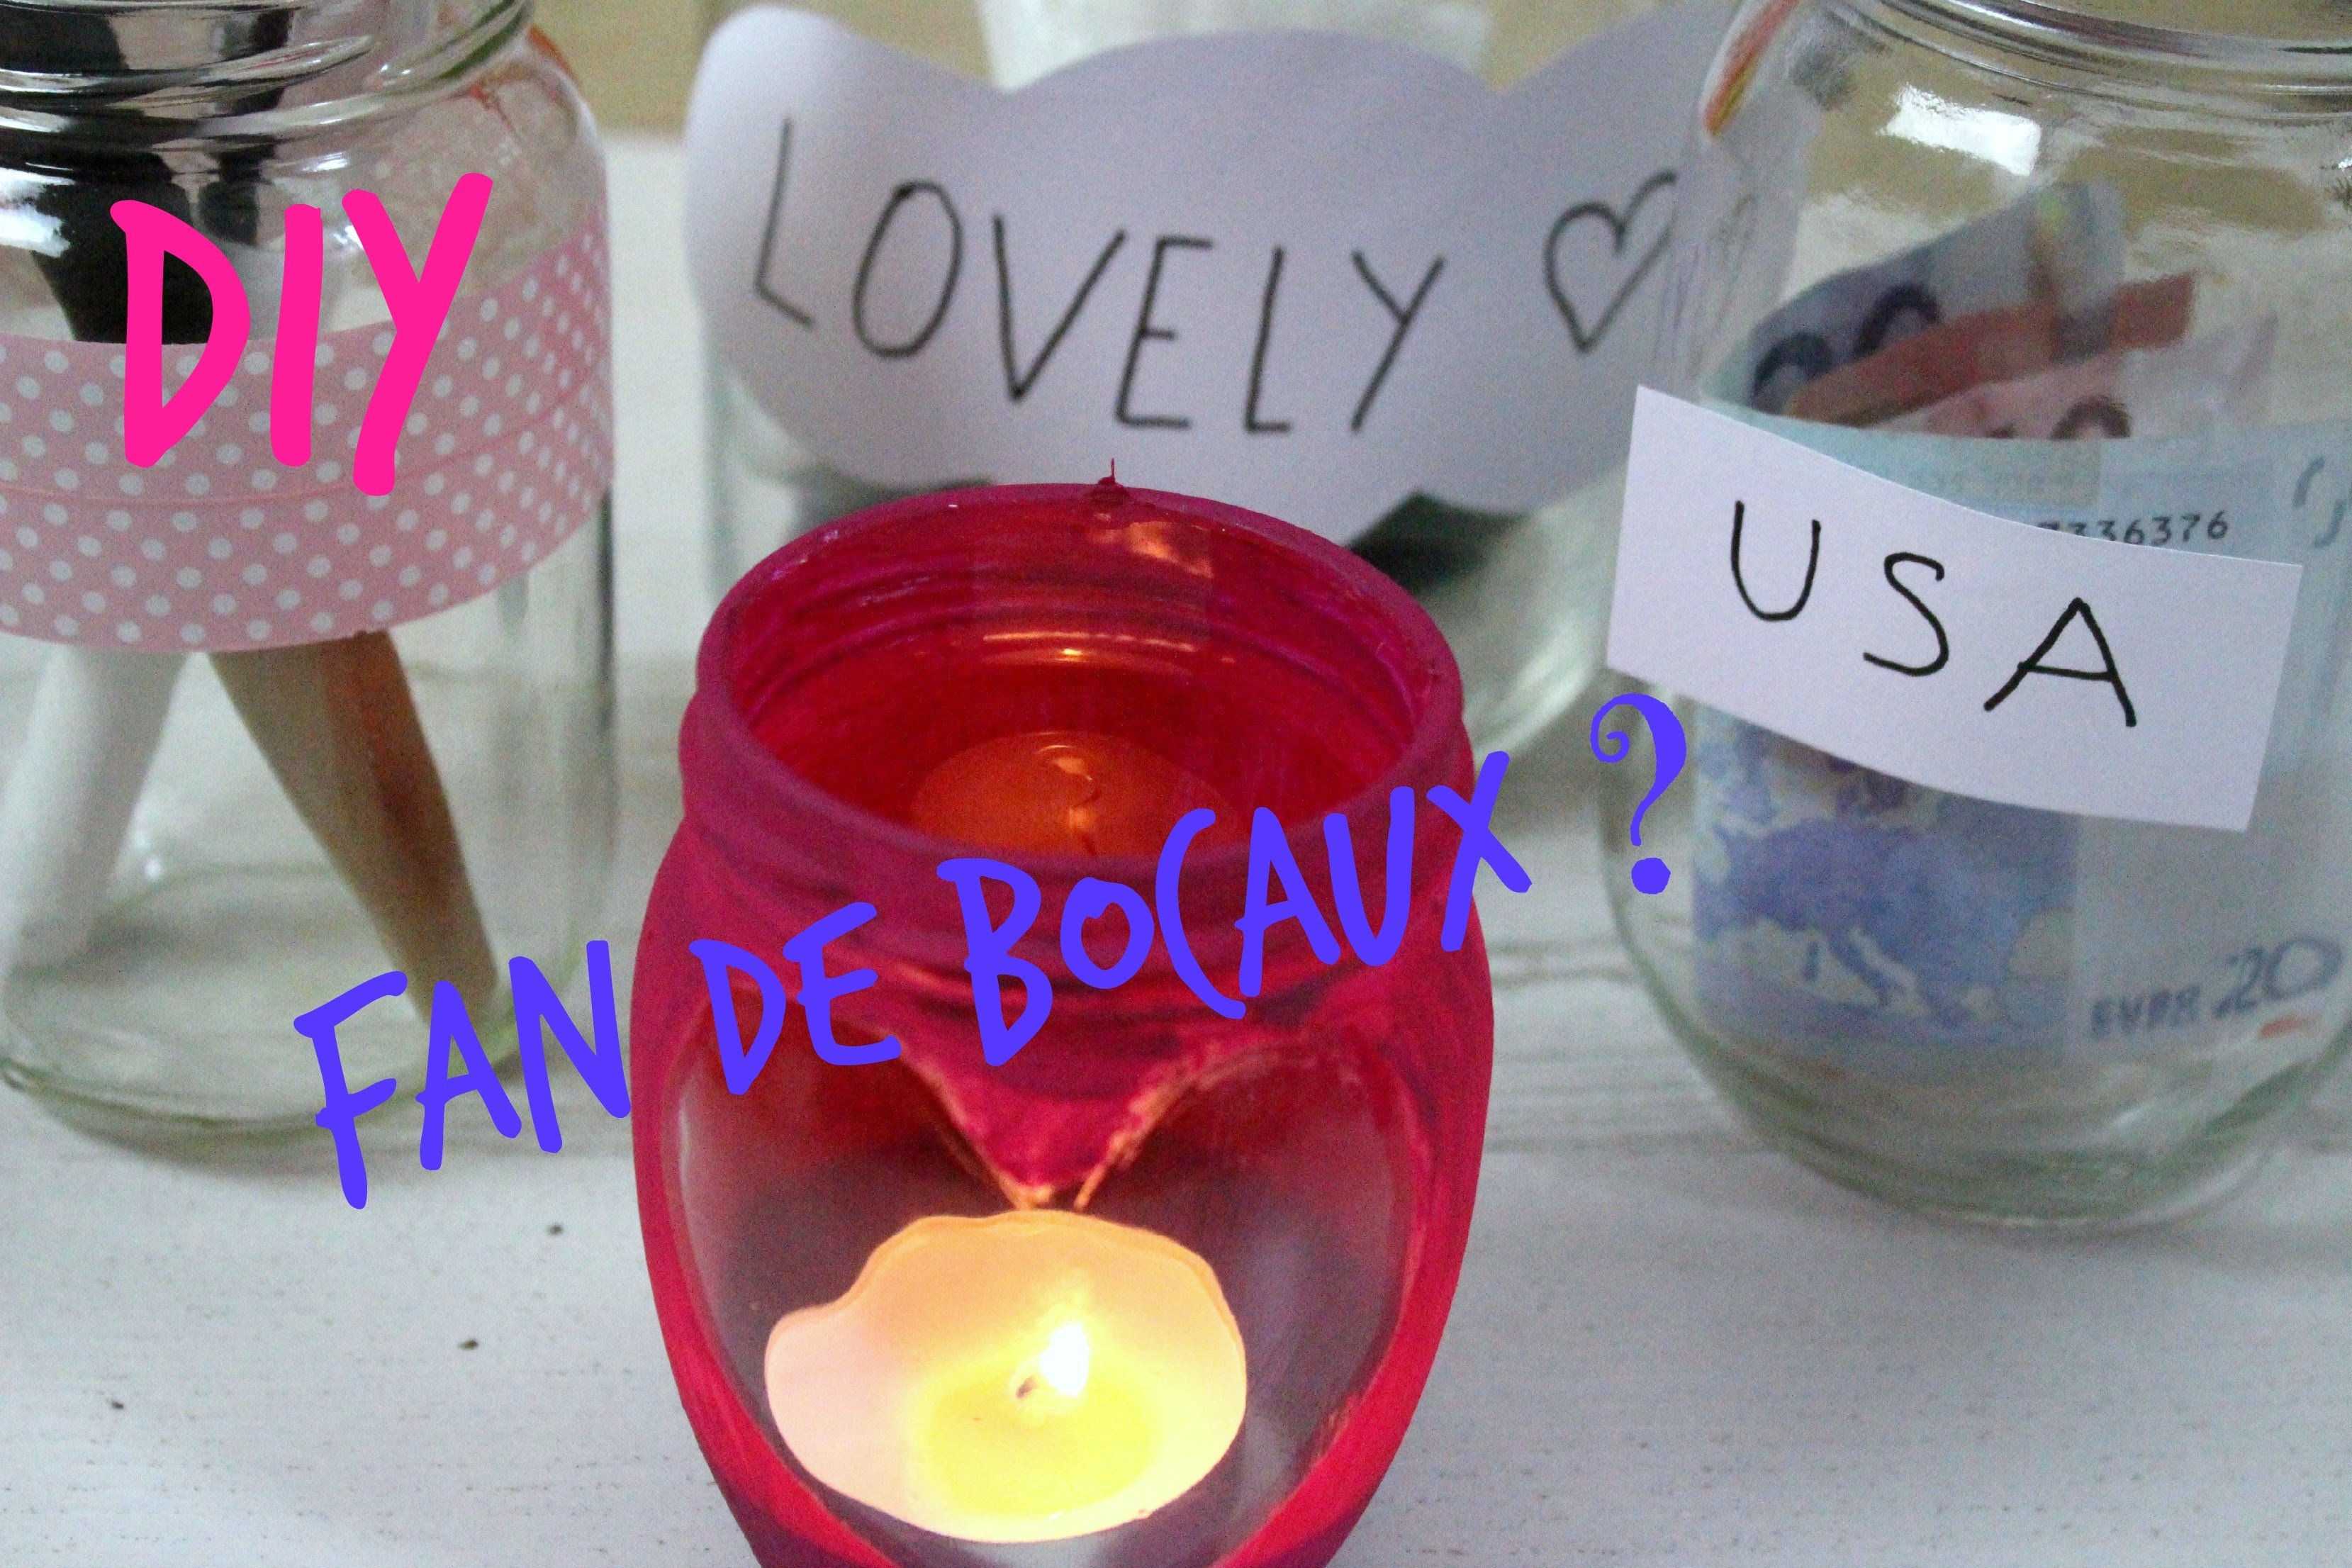 DIY : Fan de bocaux?